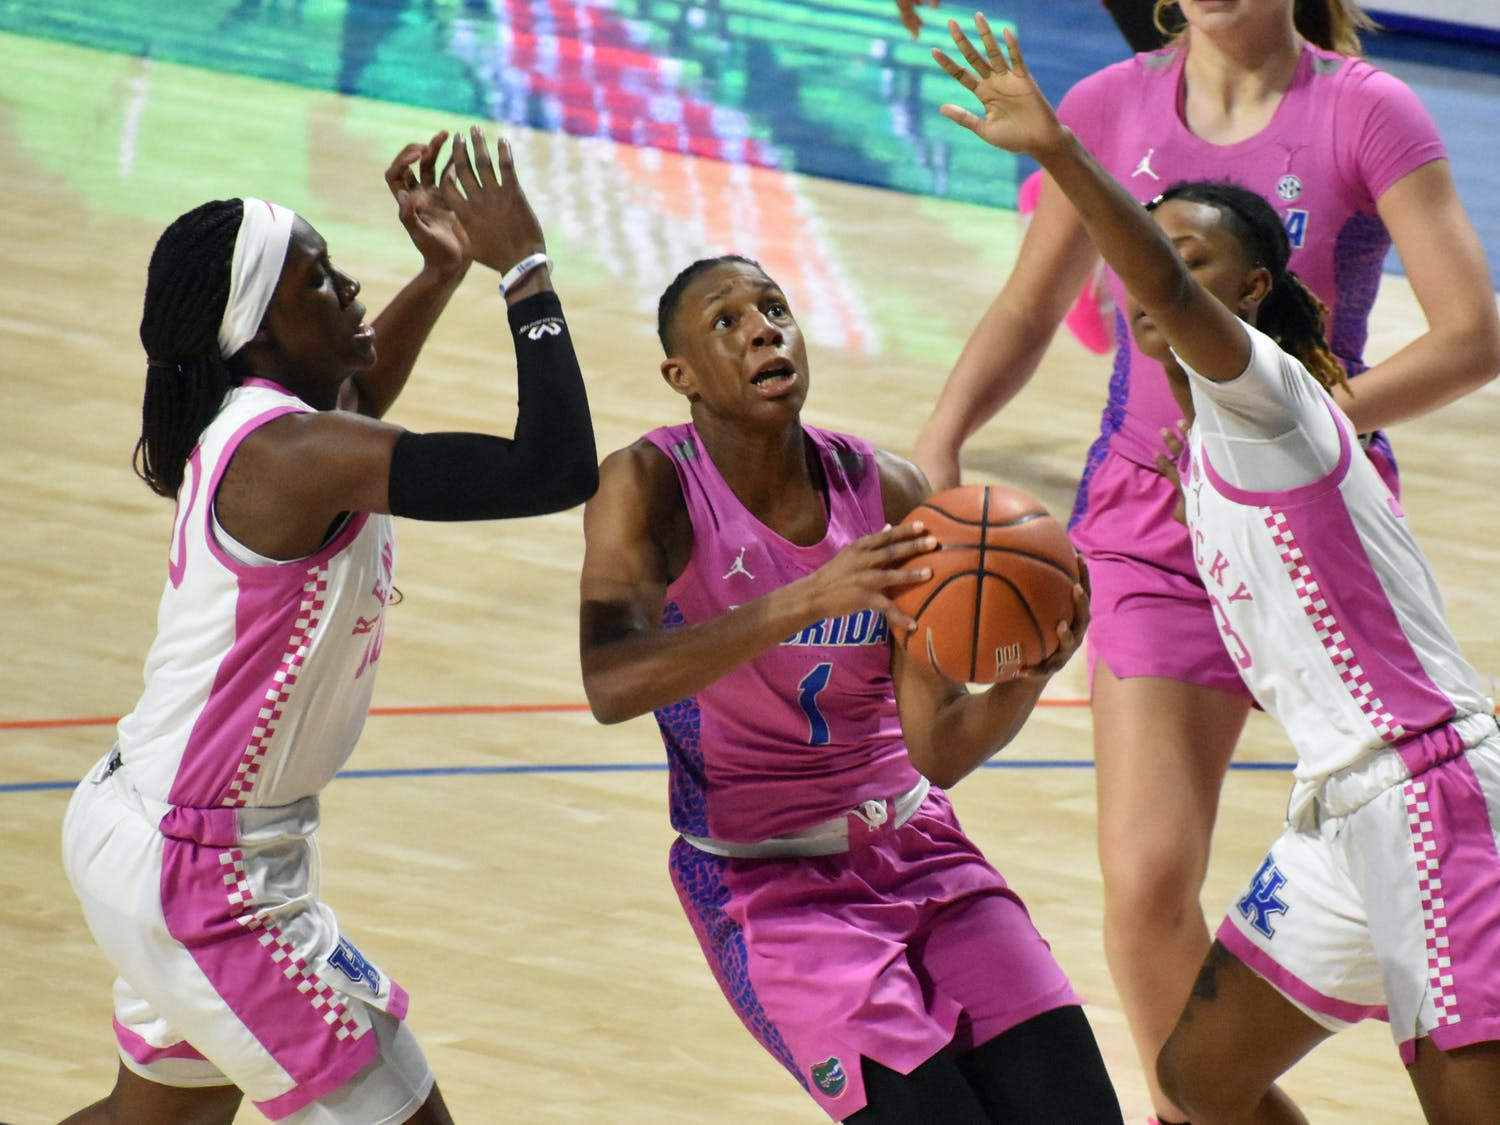 After eclipsing 1,000 career points in Wednesday's win over Auburn, star Florida guard Kiara Smith dropped a career-high 36 points — accounting for 56.2% of the Gators' points. Photo from UF-Kentucky game Feb. 1.